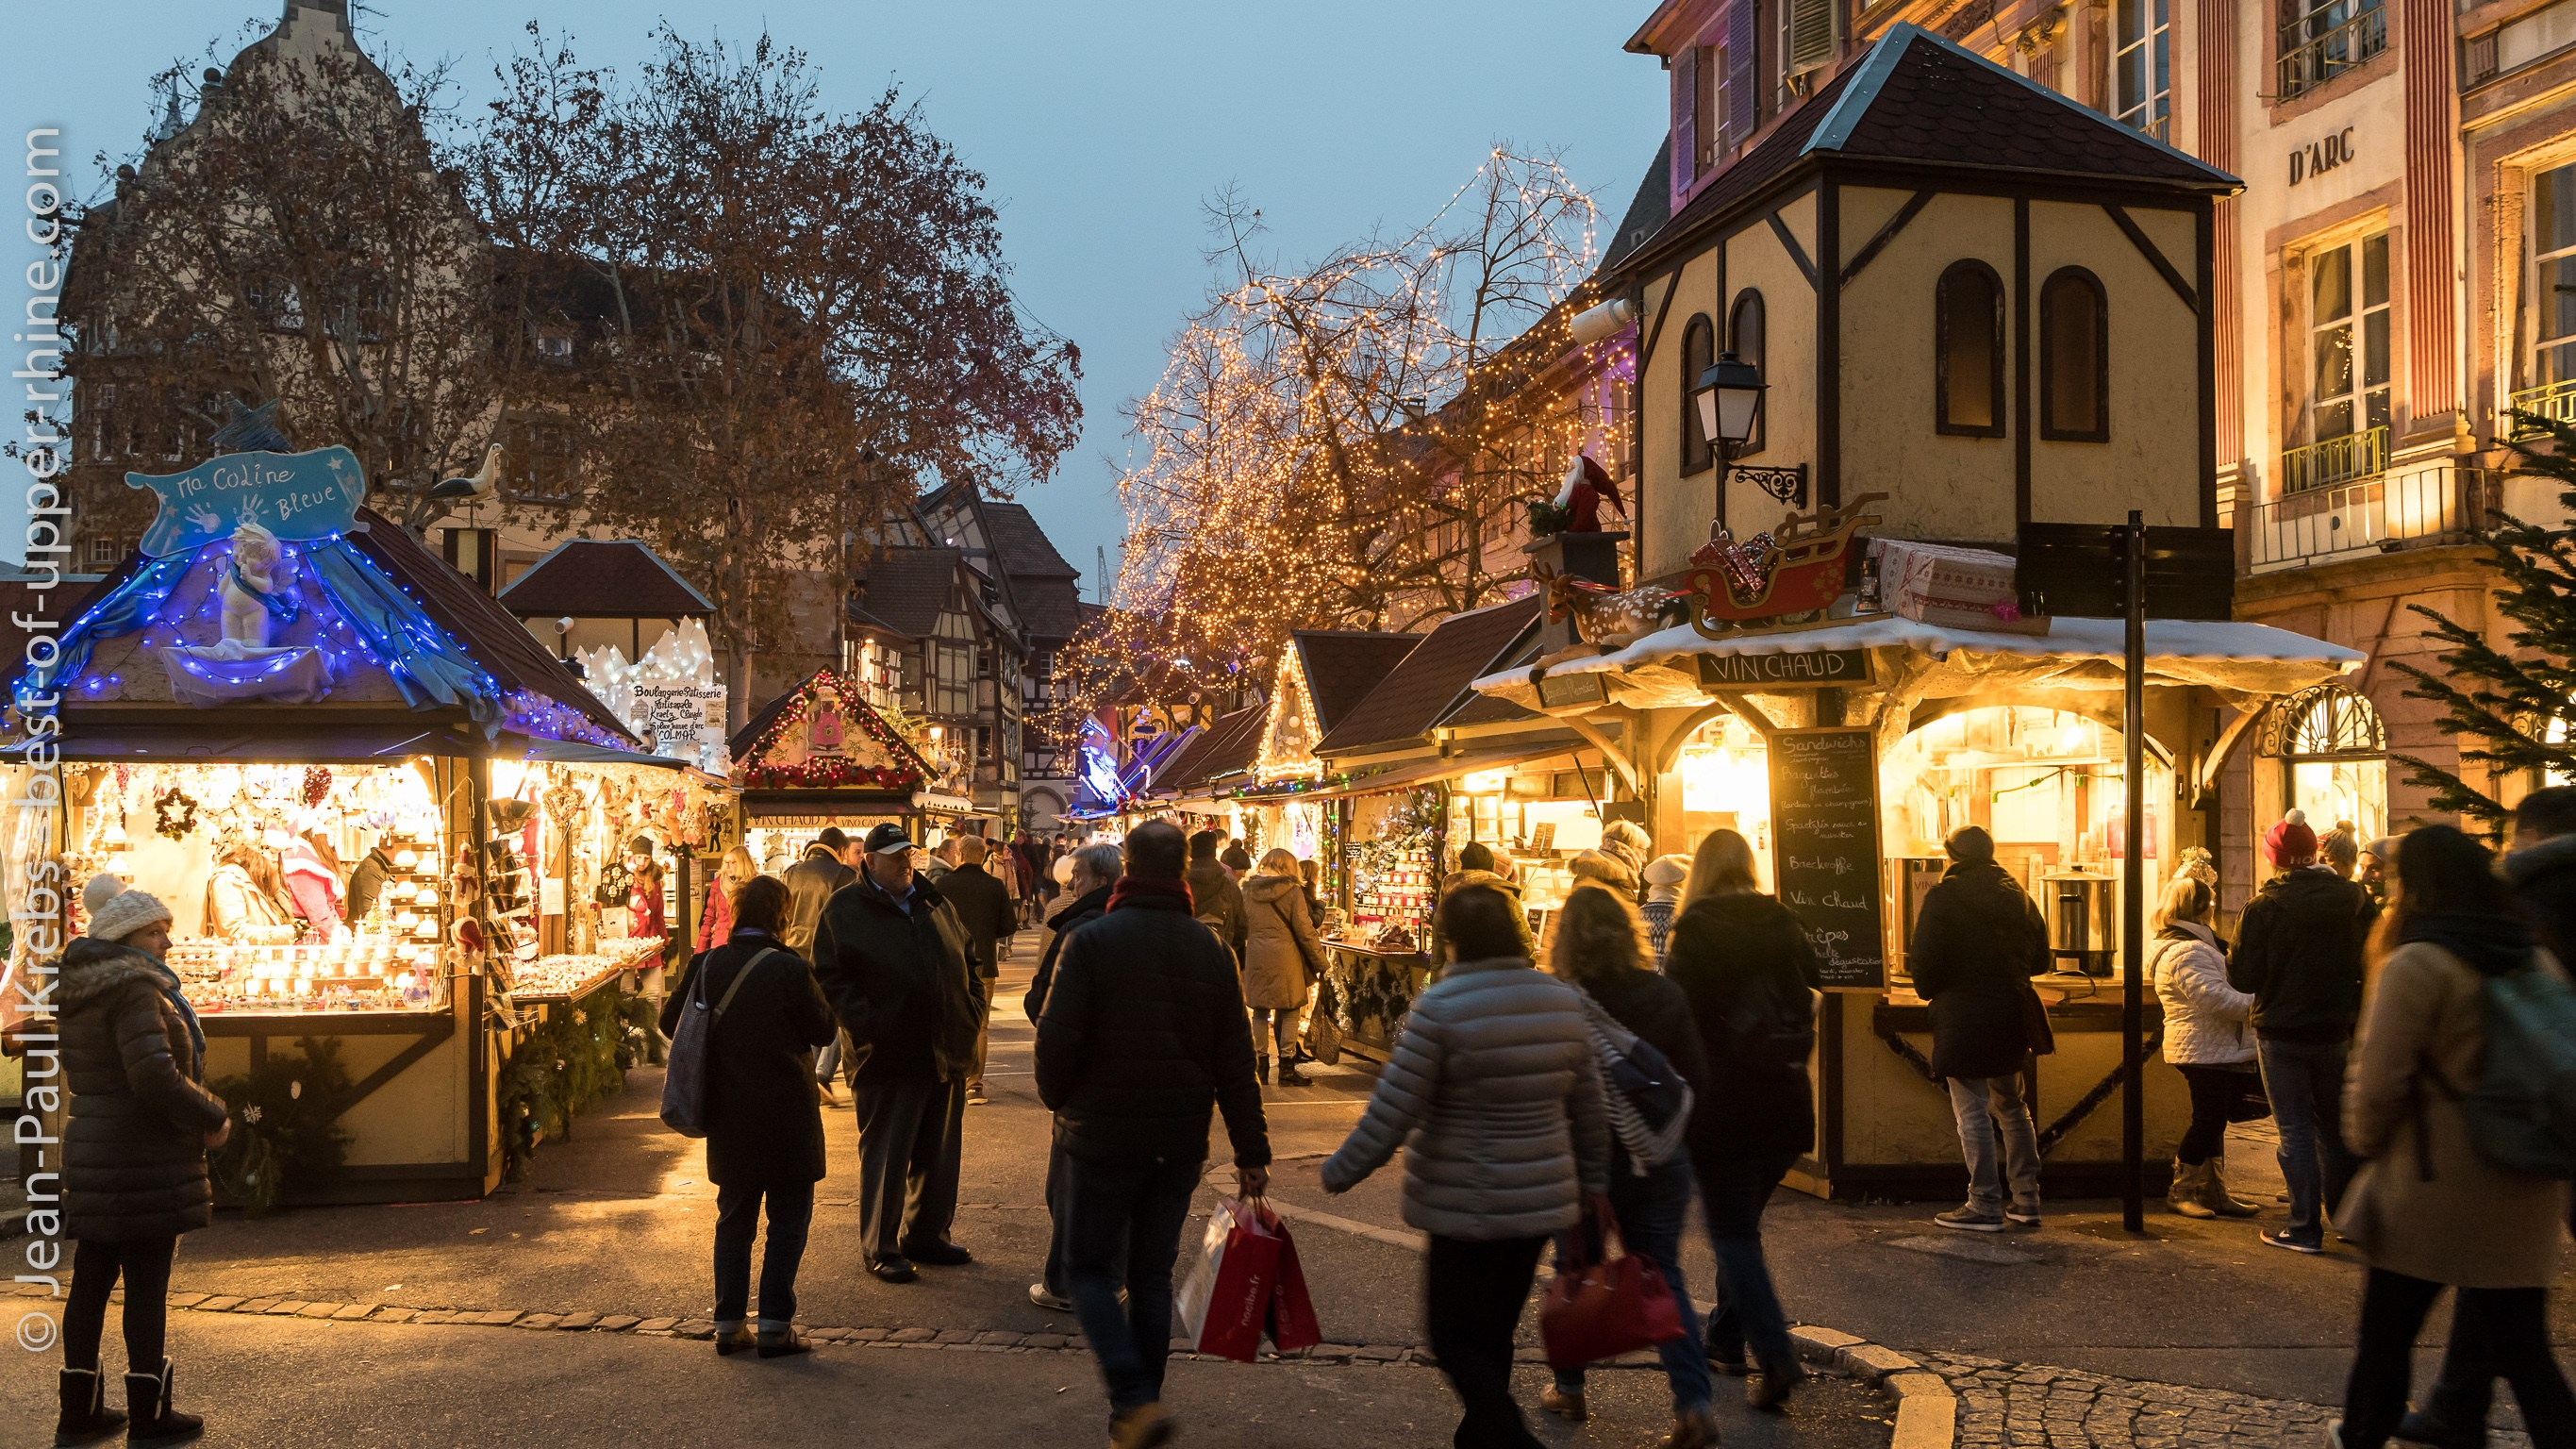 Colmar Christmas Market Dates.Colmar Christmas Markets 2018 A Small Picture Gallery Of